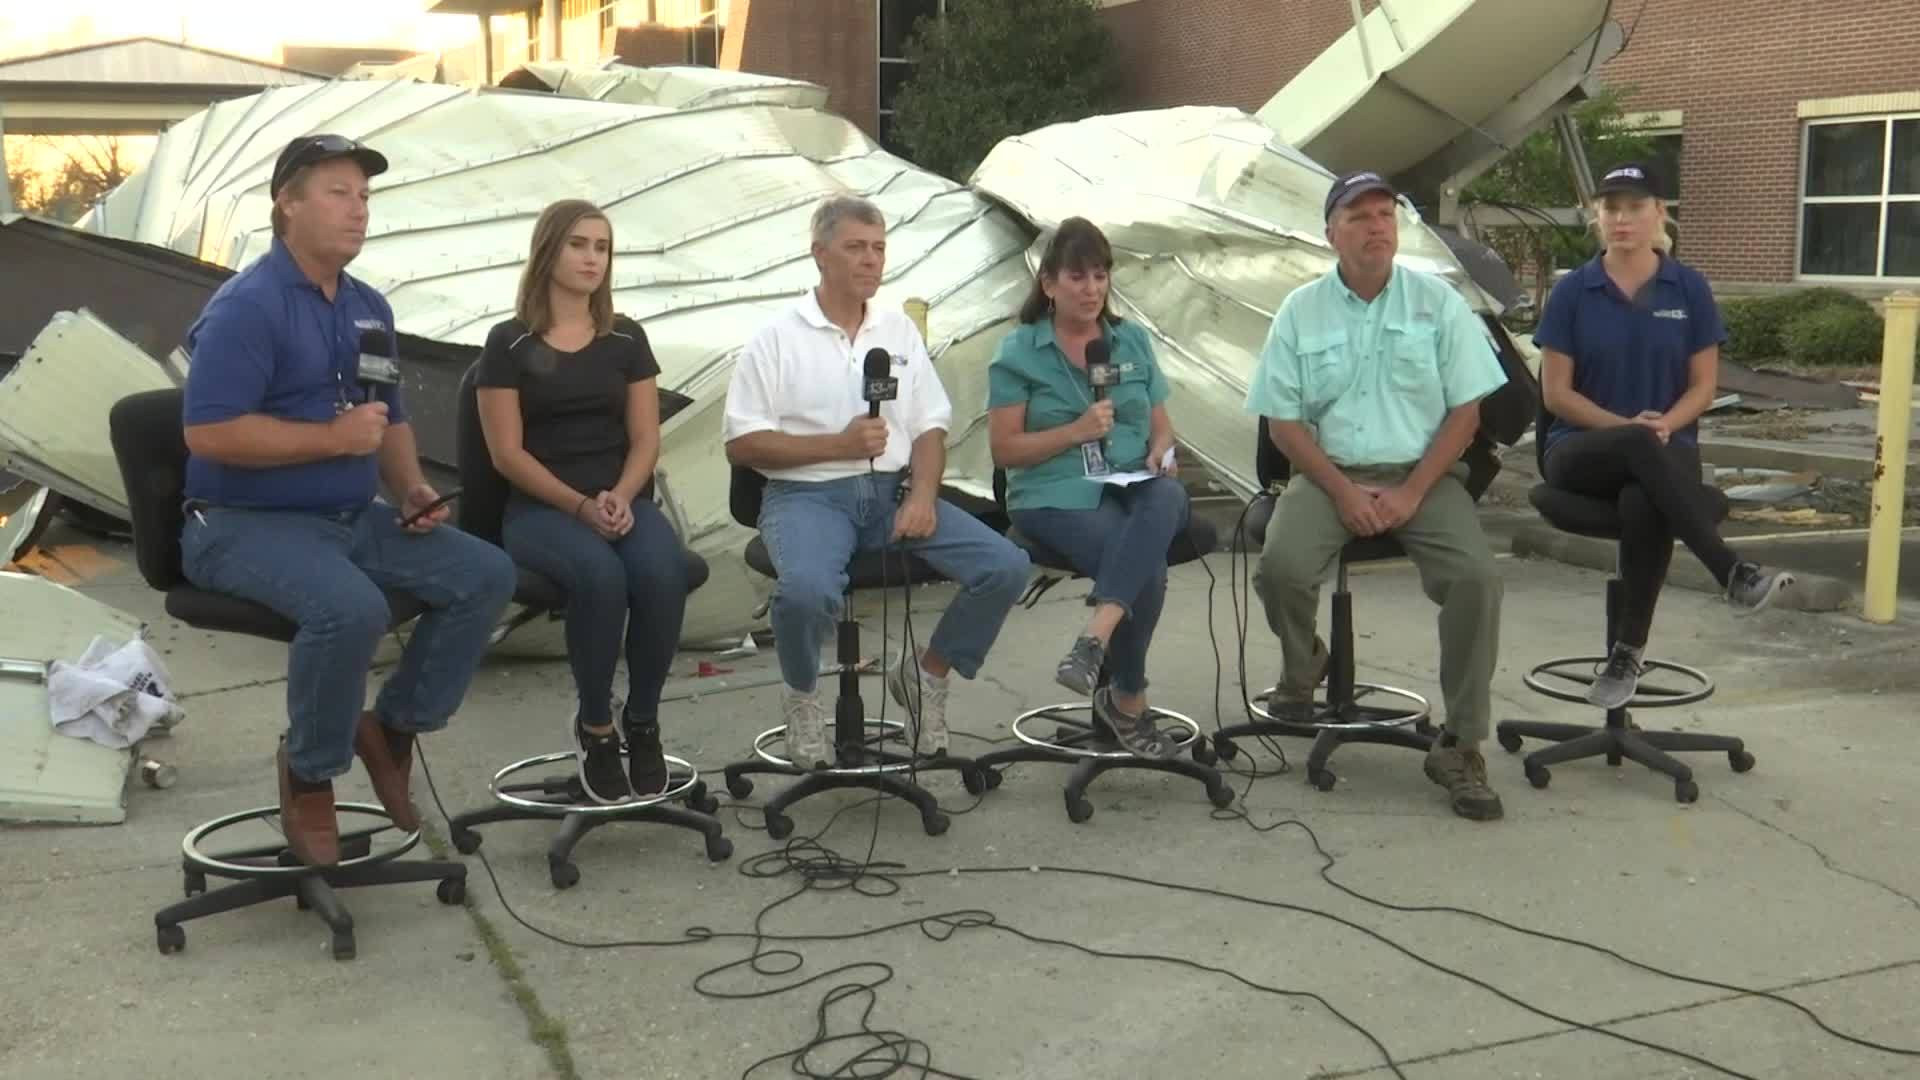 News 13 broadcasts hour-long newscast after Hurricane Michael damage